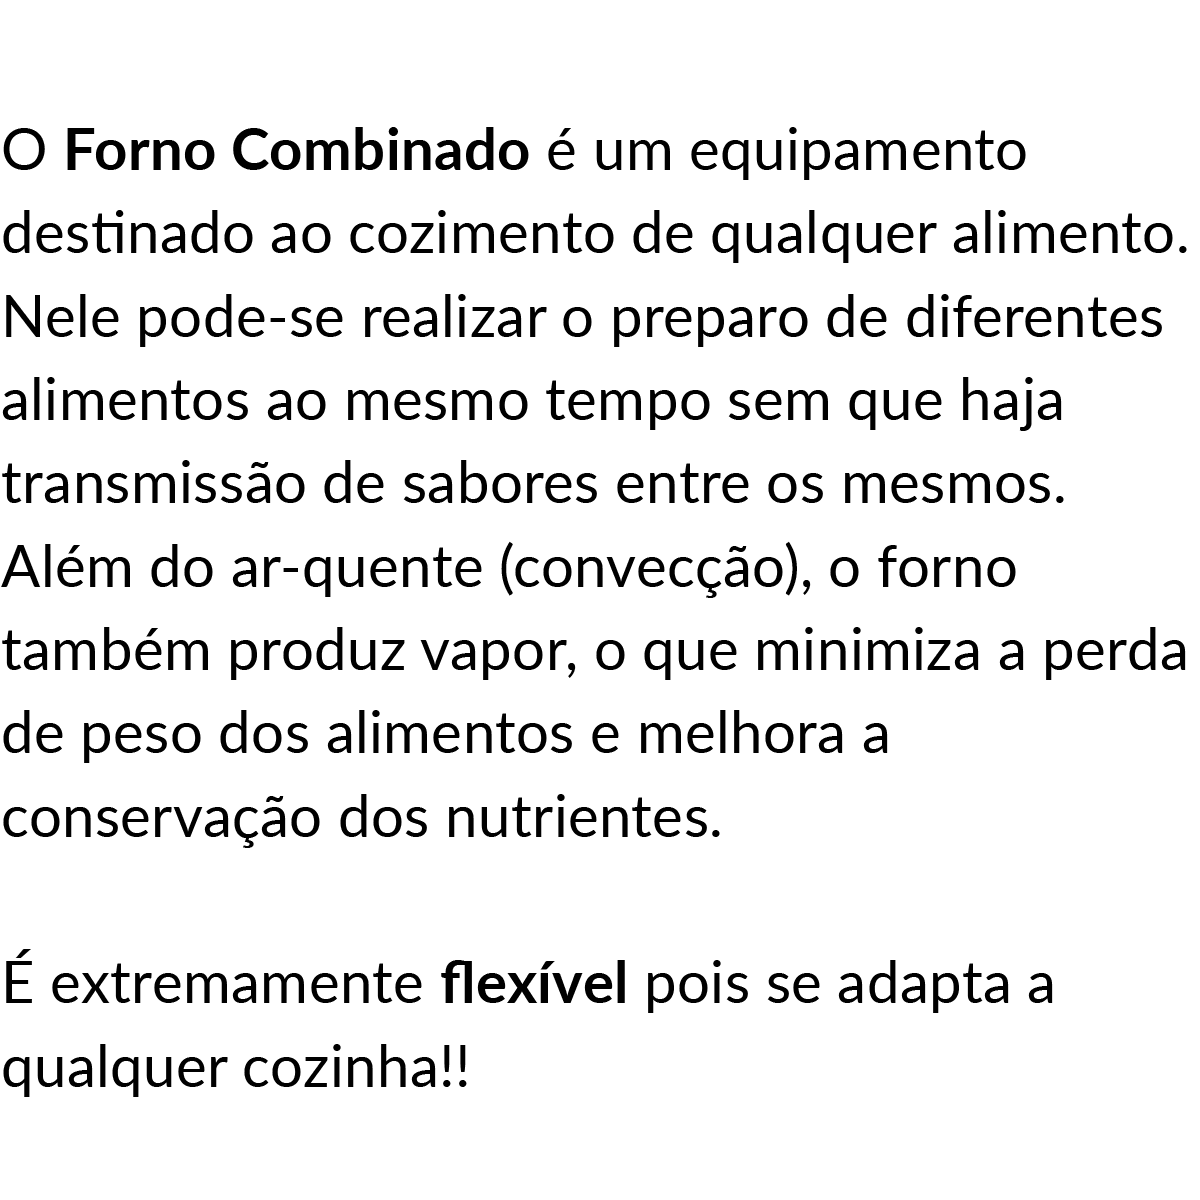 VÍDEOS: DEMONSTRAÇÃO DO FORNO COMBINADO